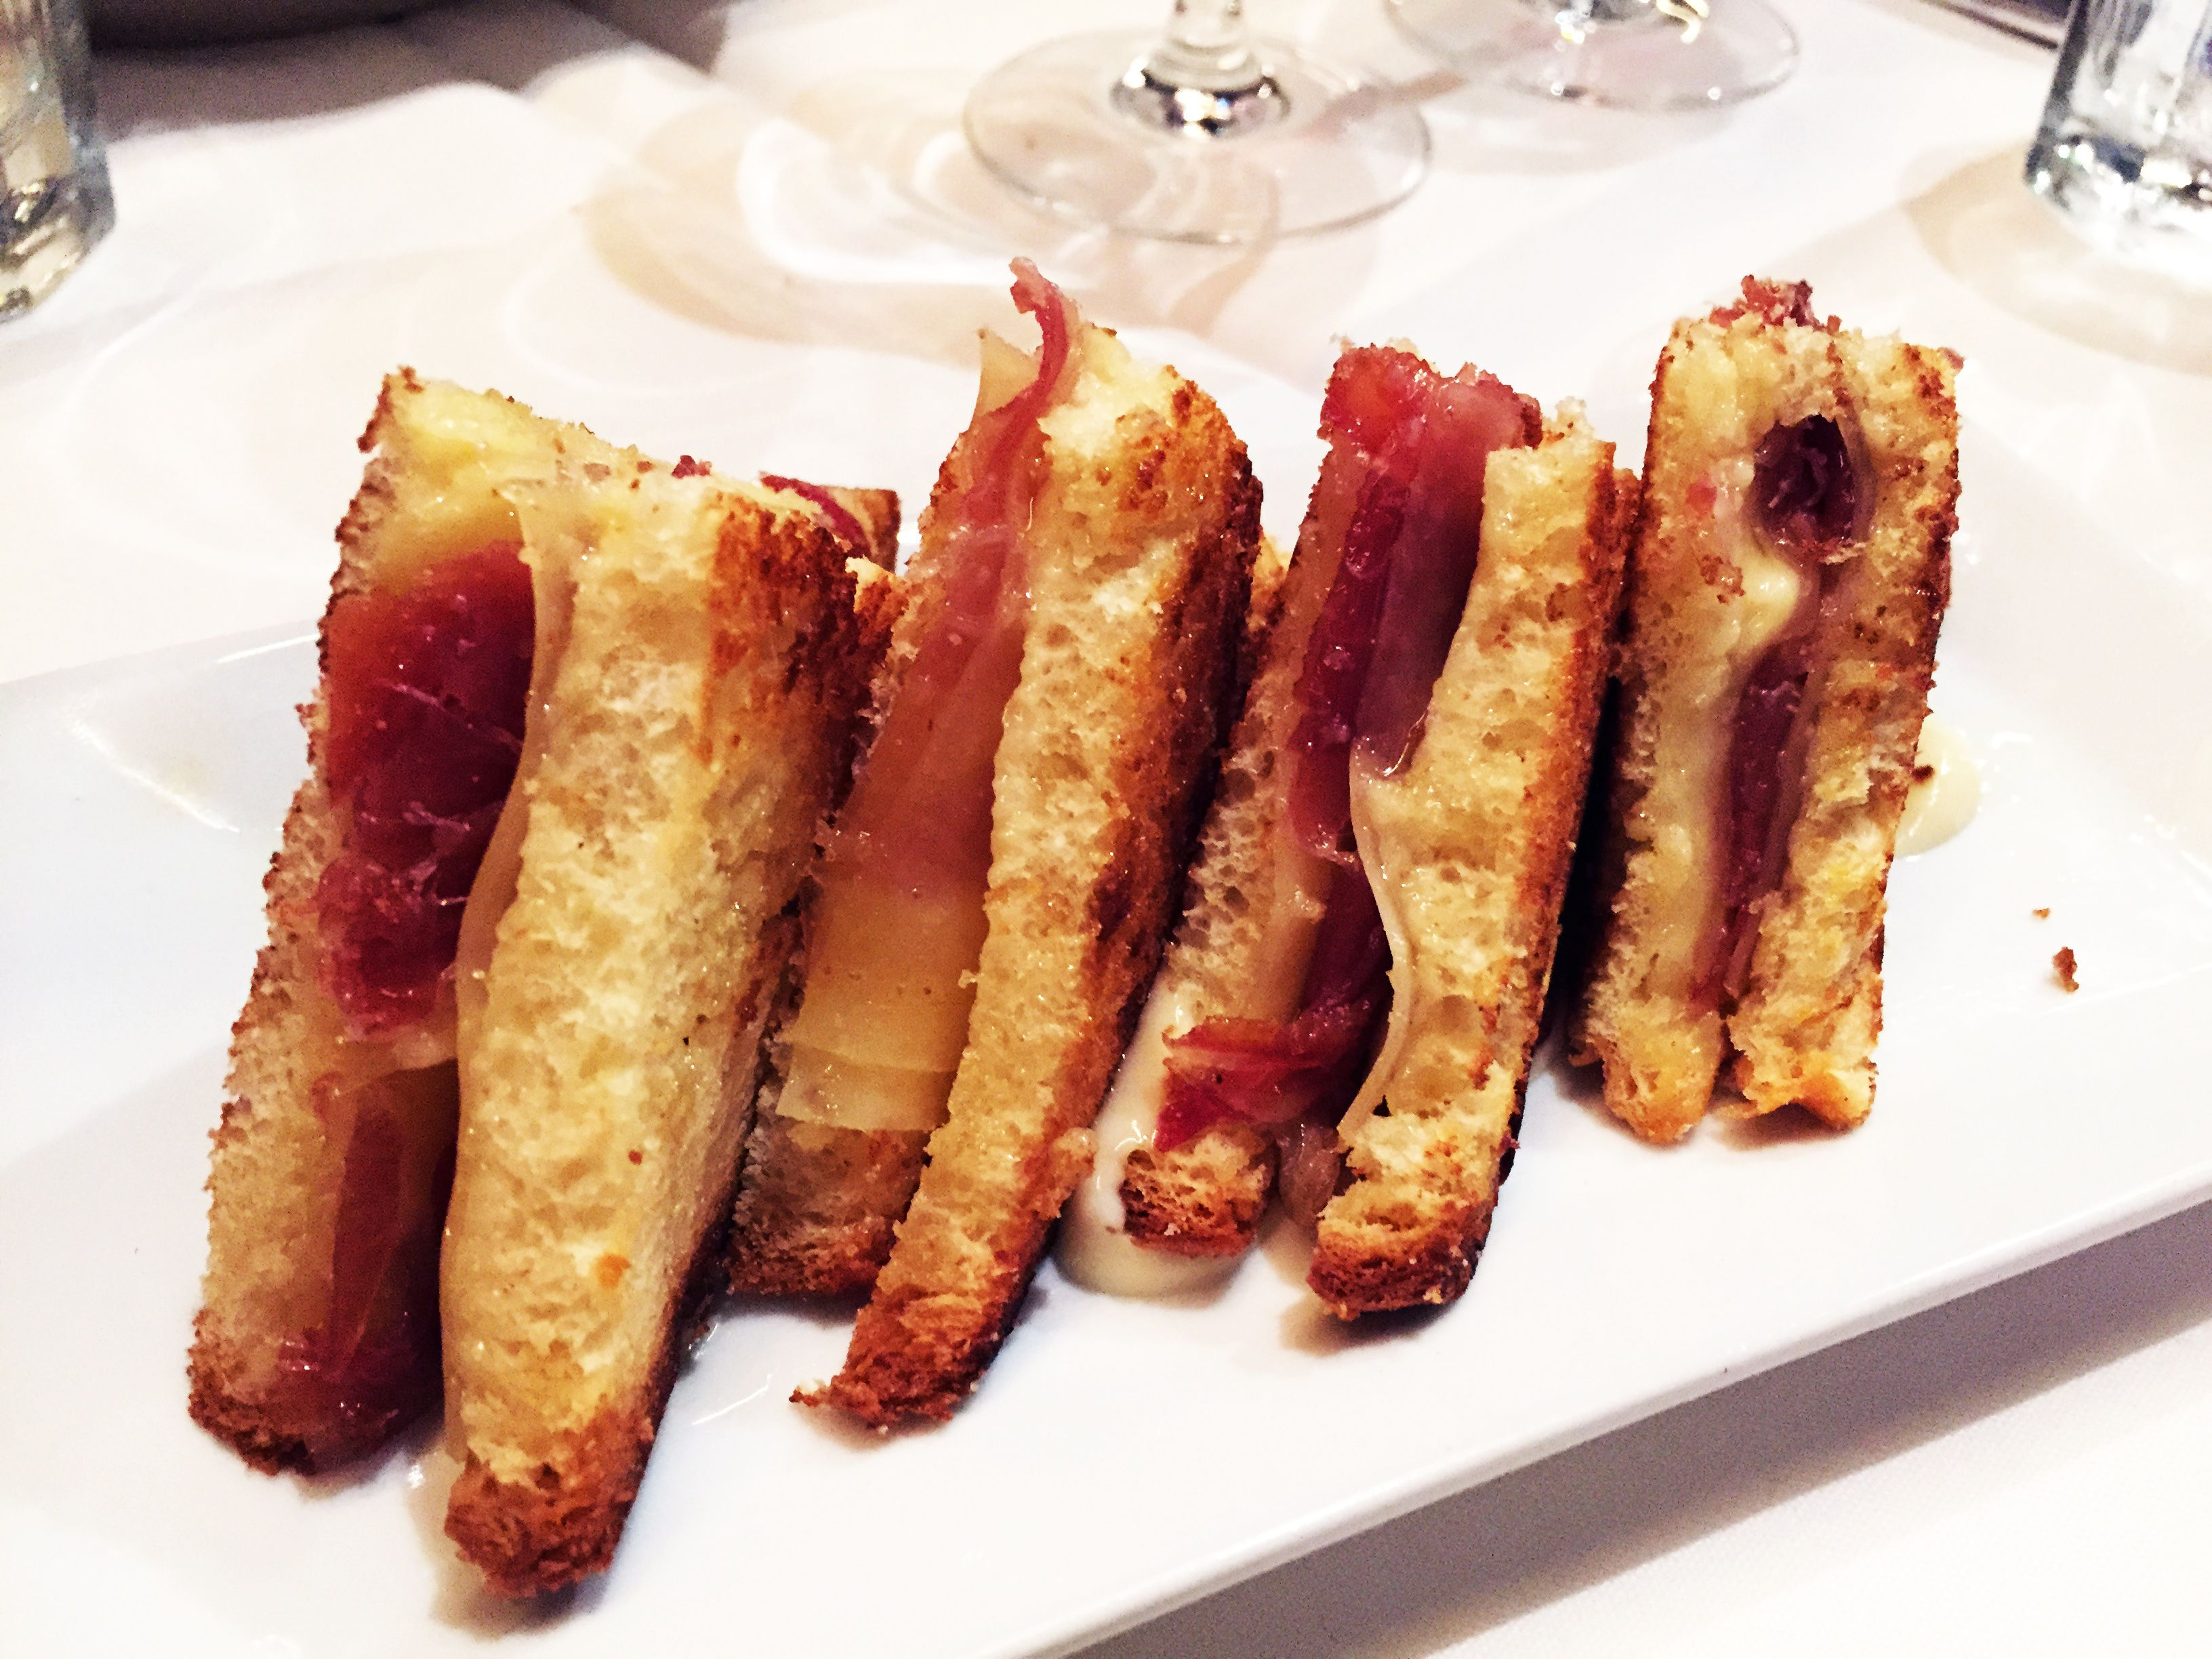 Whole New Take On Grilled Cheese With Truffled Bikini Sandwich 4 Noms From Barcelona Wine Bar A New Spanish Tapas Place Barcelona Wine Bar Food Spanish Tapas